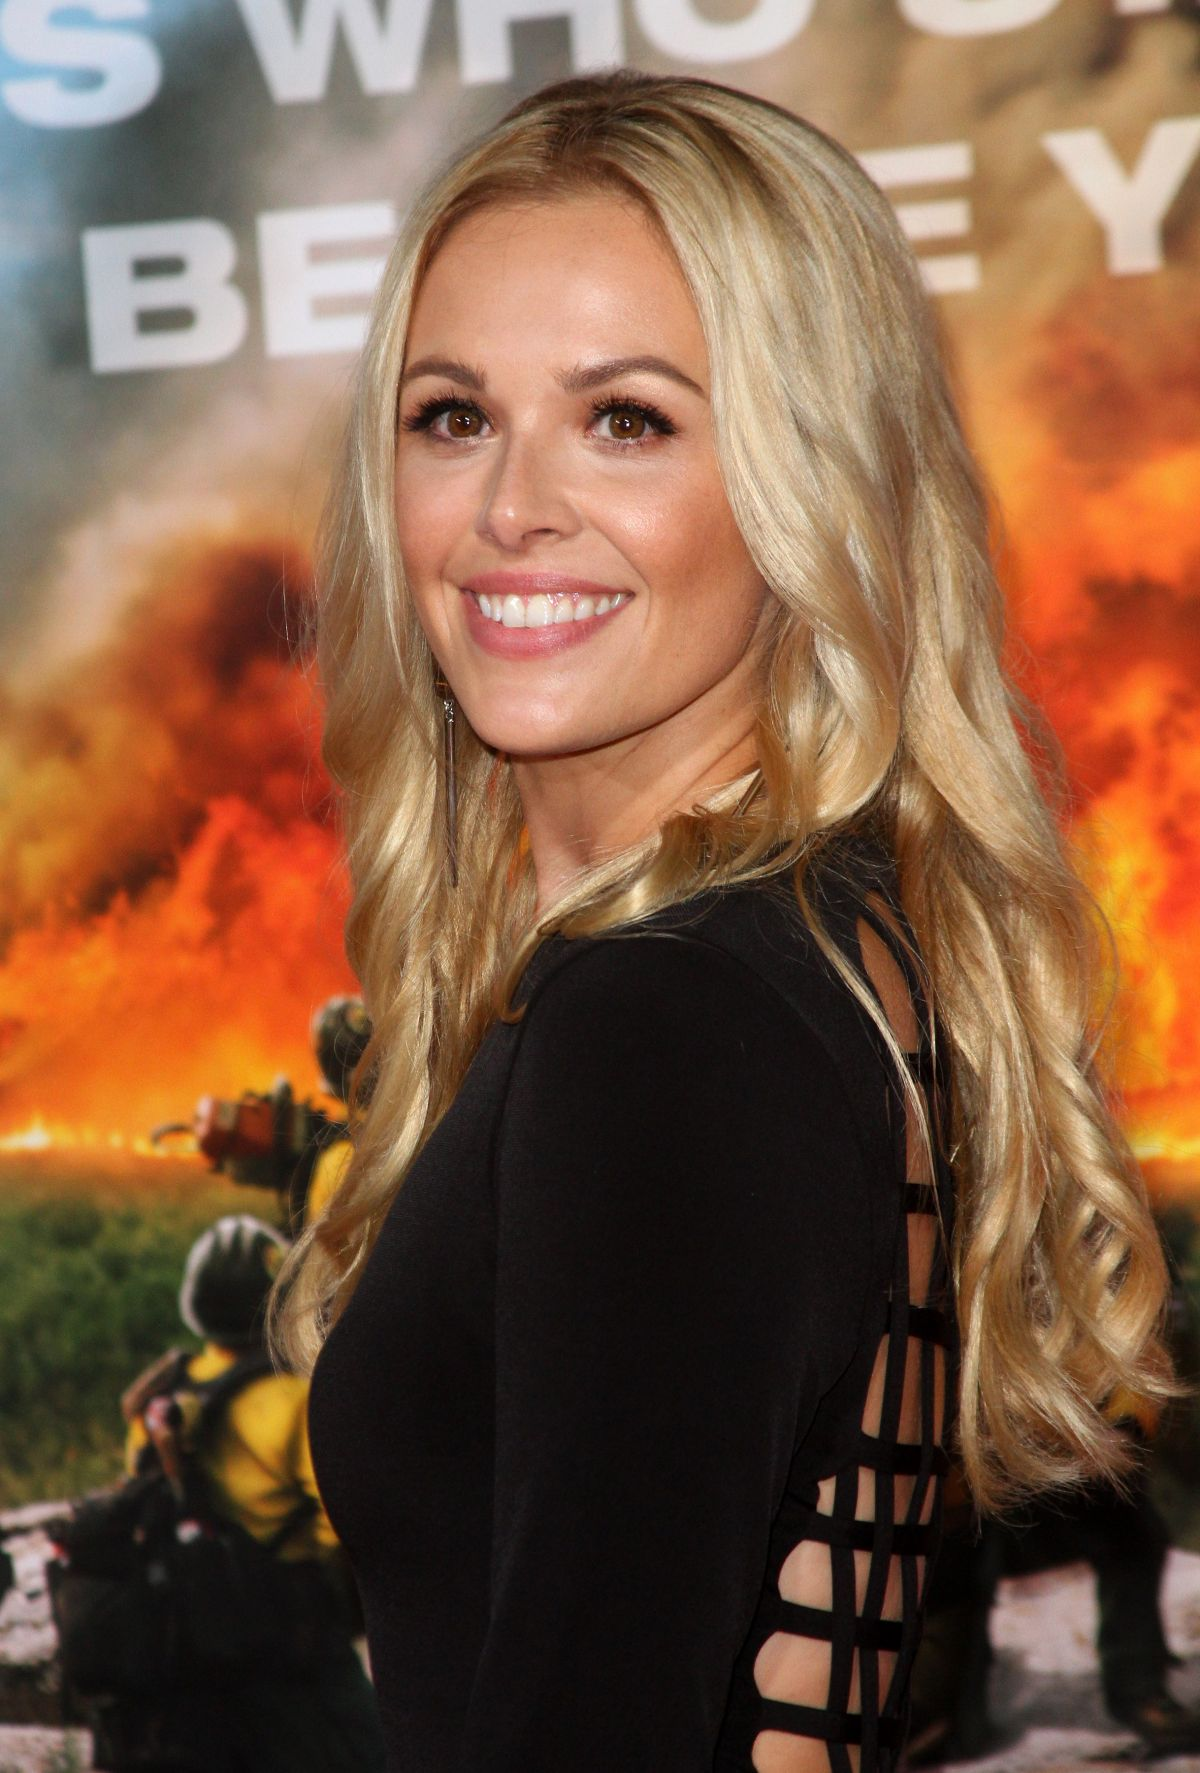 Natalie Hall At 'Only The Brave' film premiere, Los Angeles   natalie-hall-at-only-the-brave-film-premiere-los-angeles-34